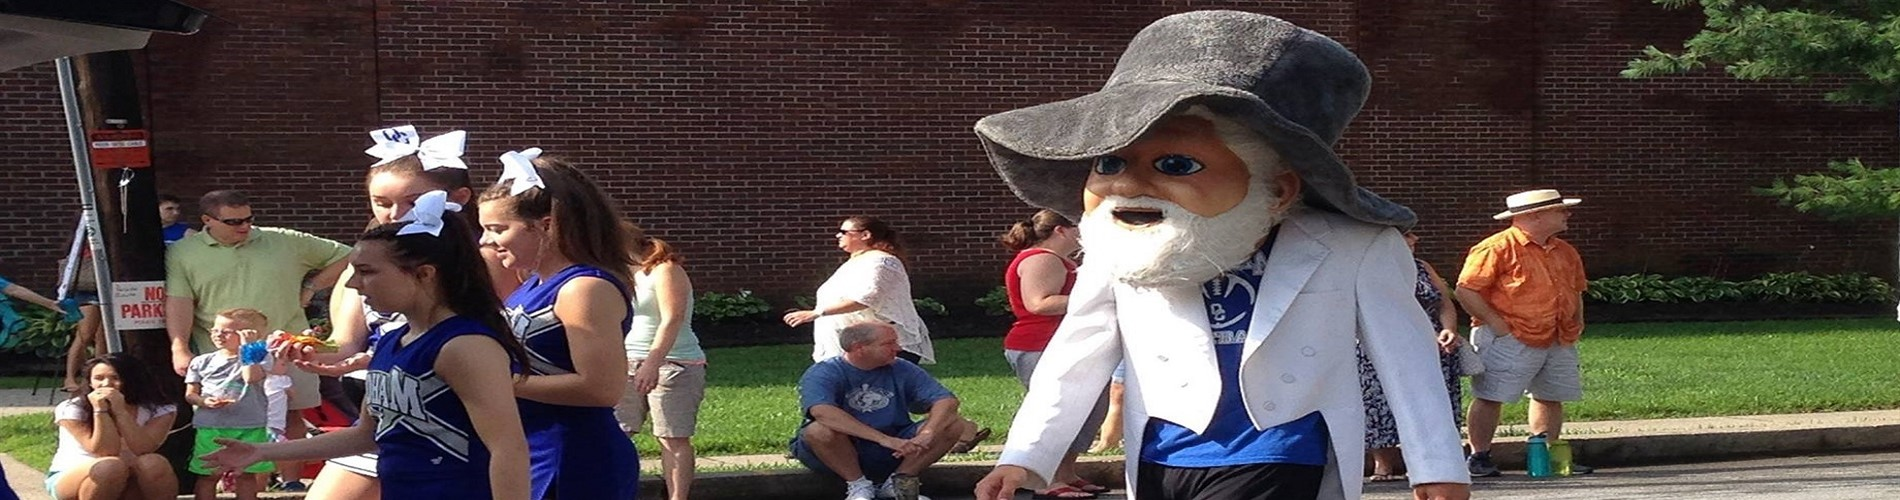 OCHS Colonel Mascot in the Oldham County Parade.